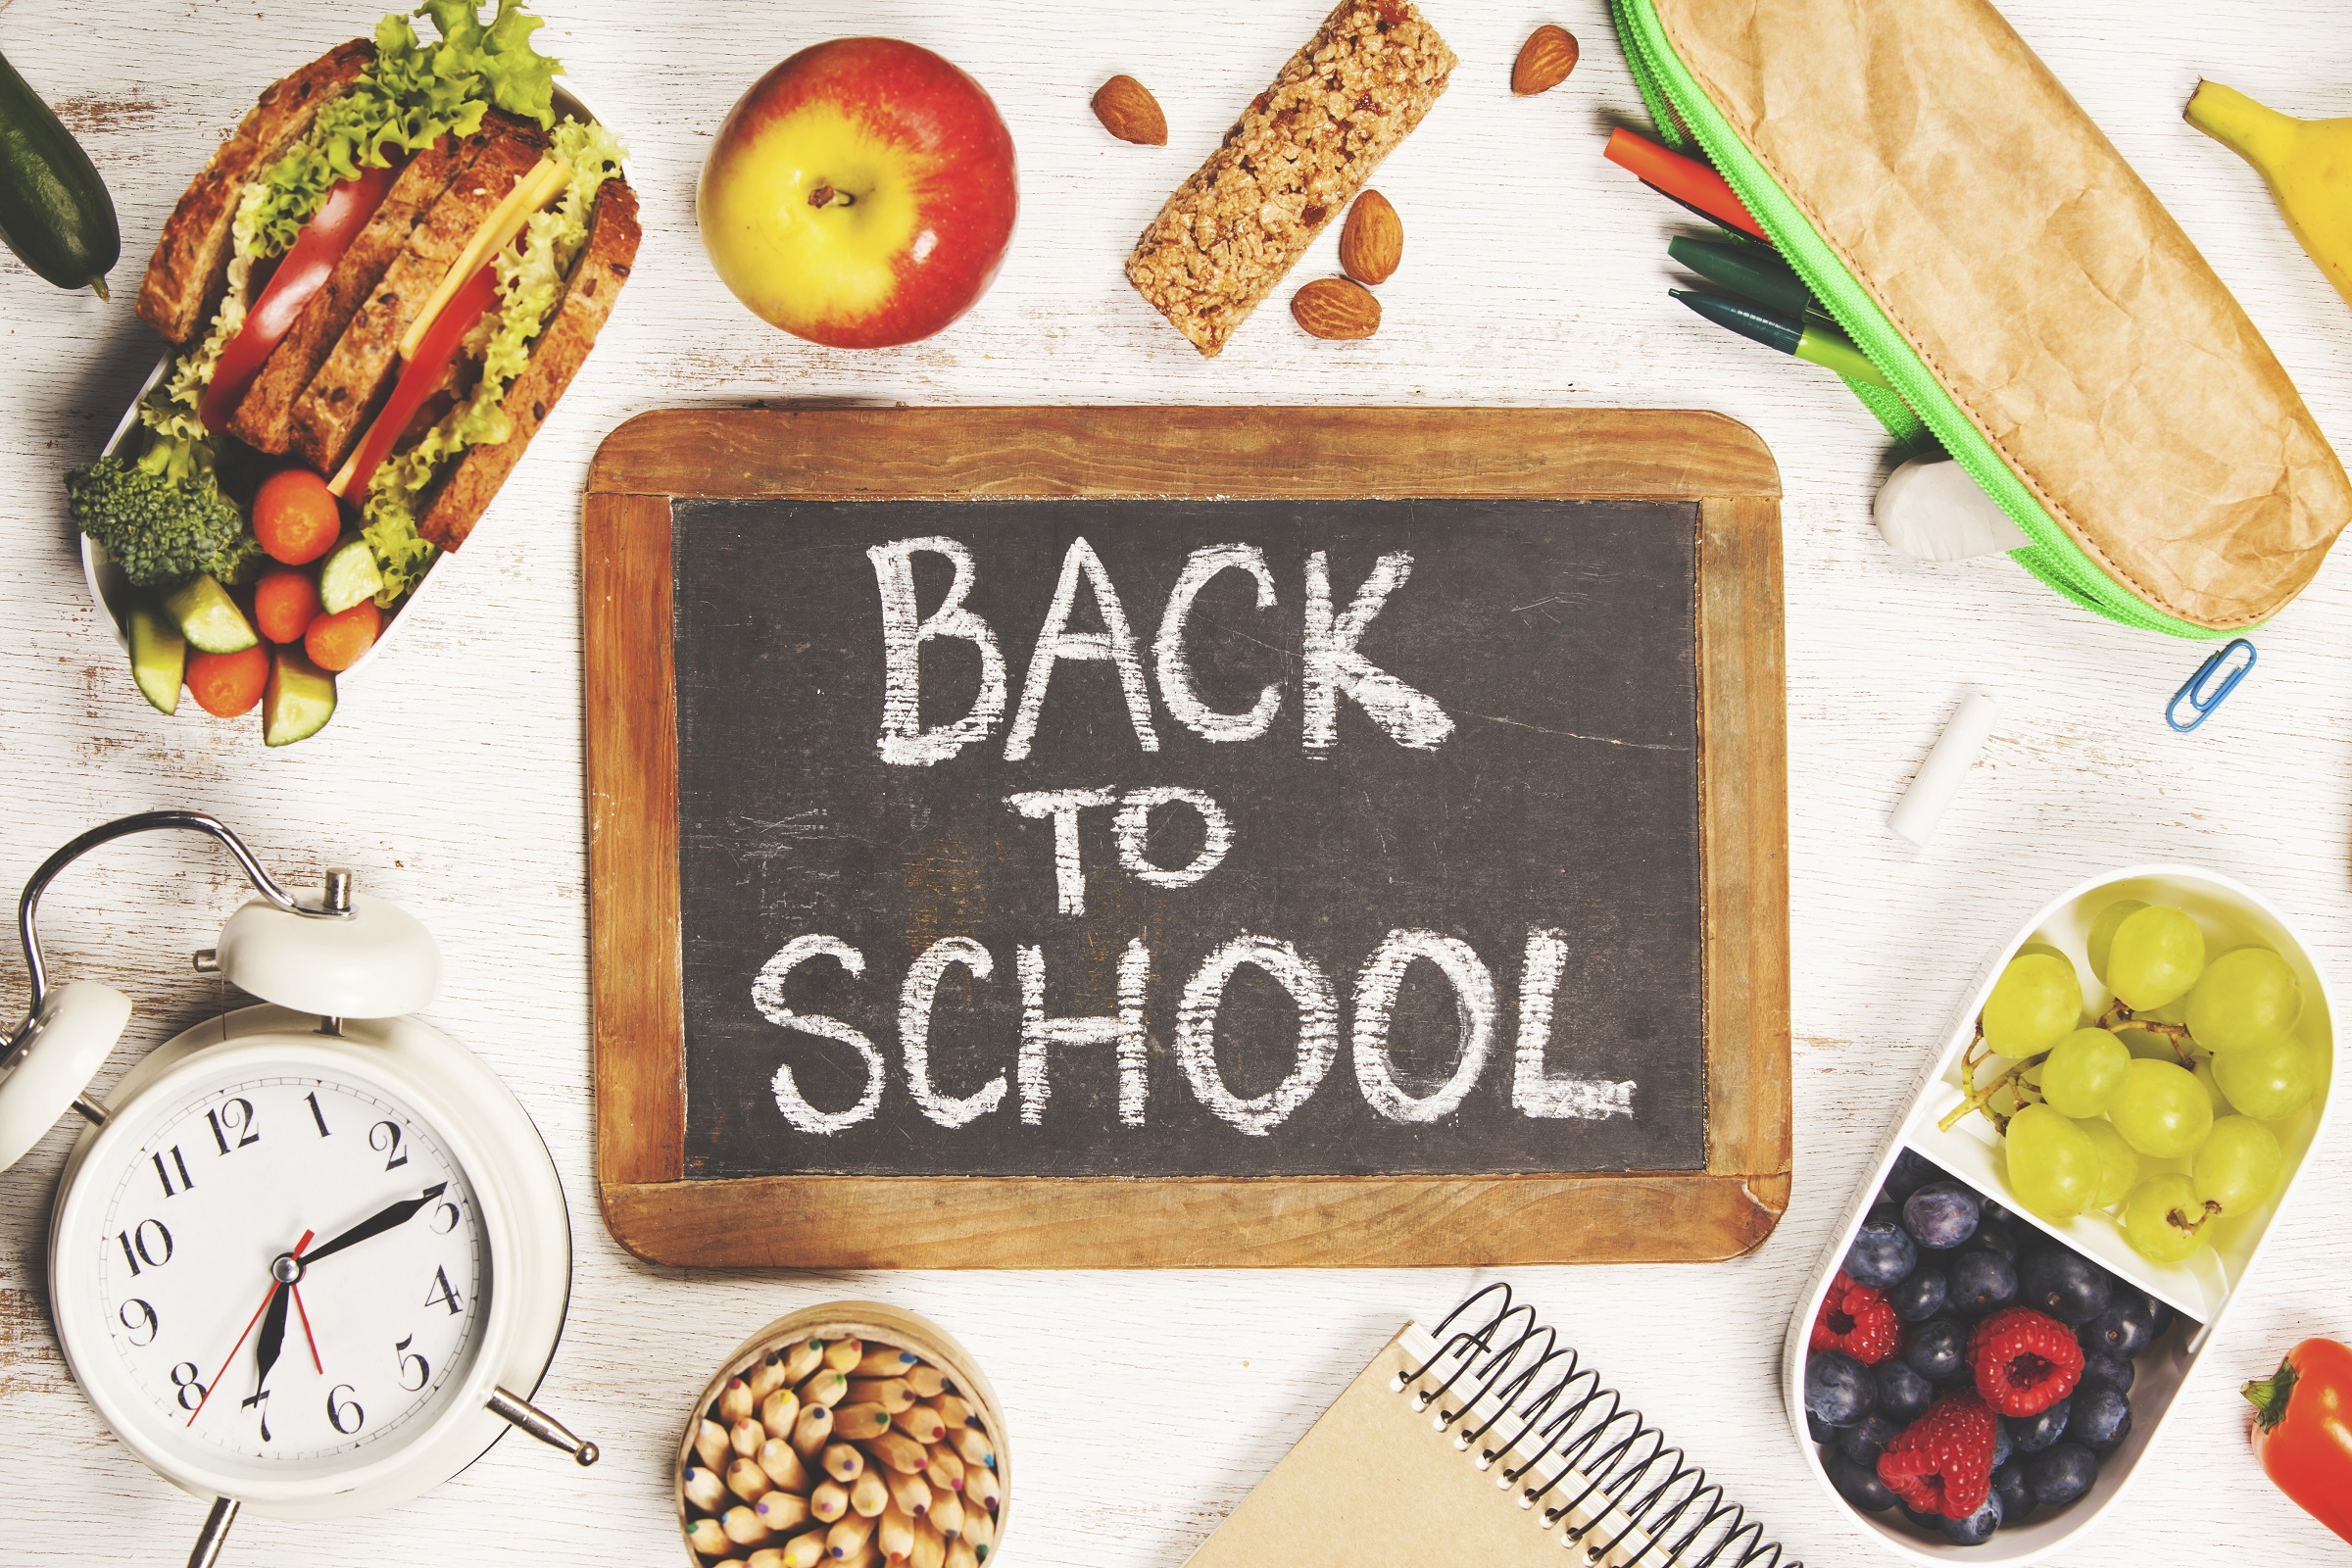 Tips for packing safe school lunches